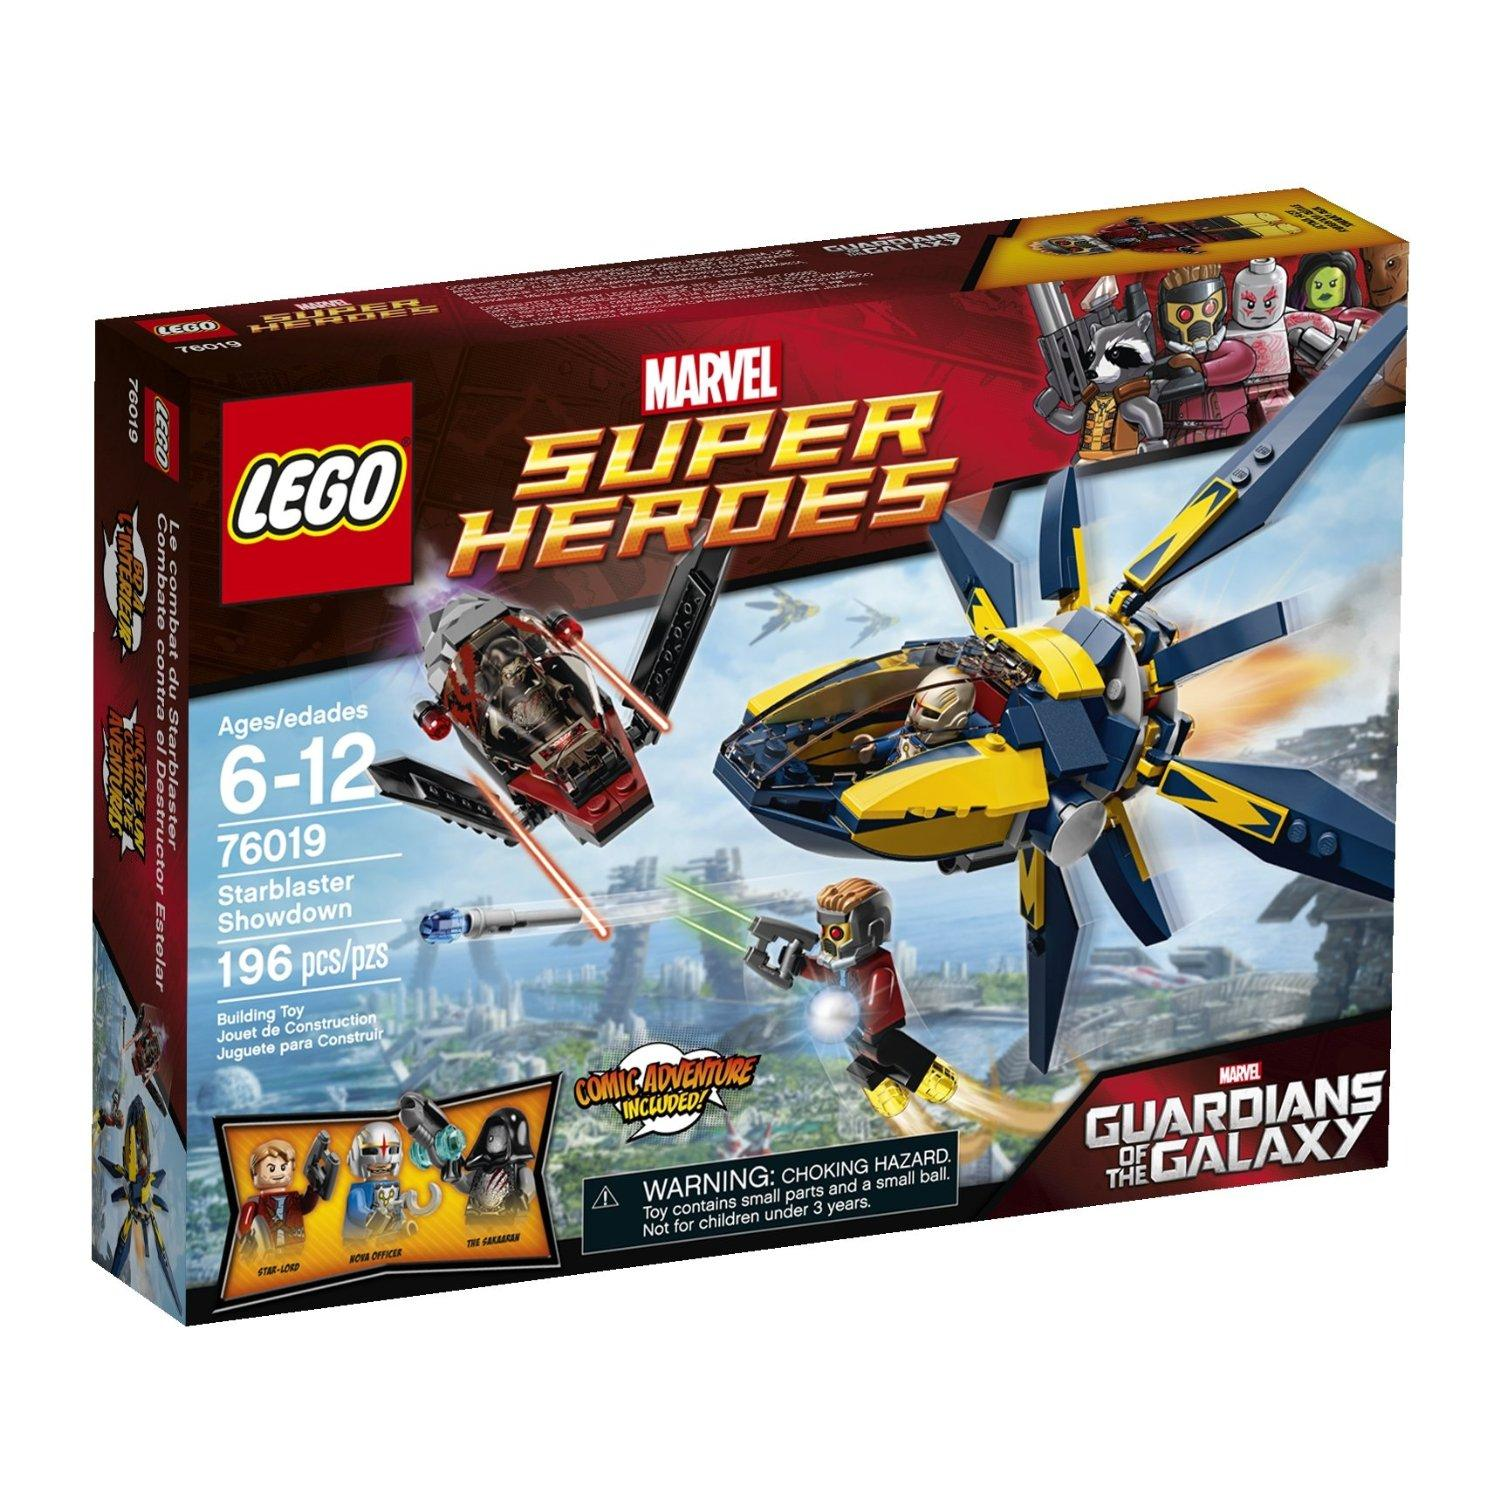 LEGO Superheroes 76019 Starblaster Showdown Building Set